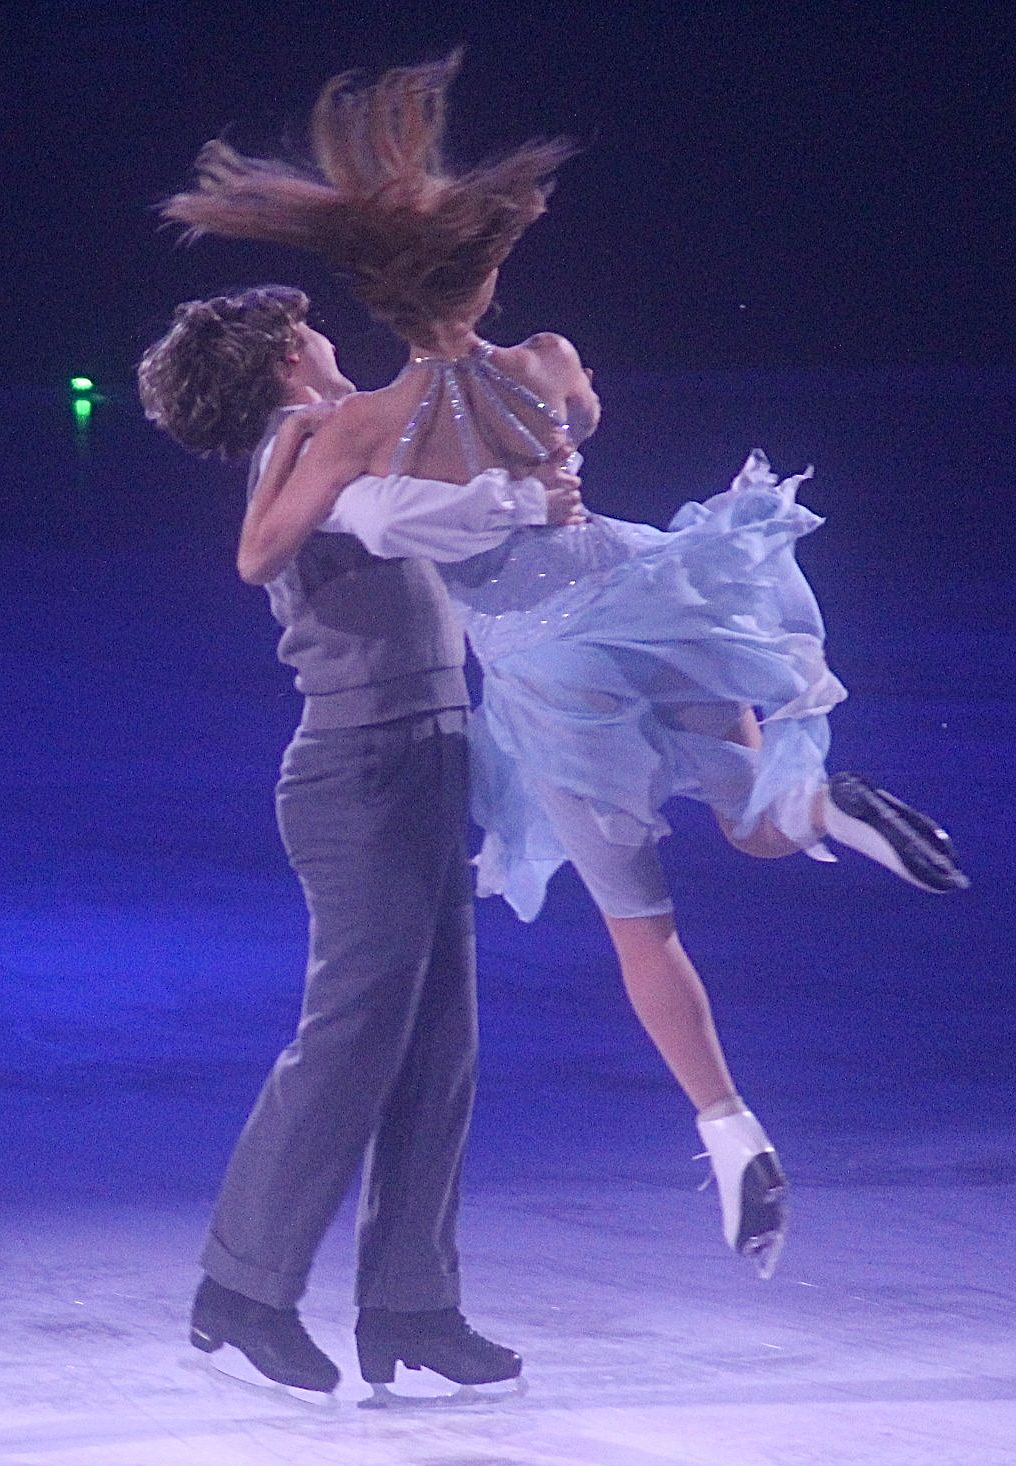 providence dunkin donuts center stars on ice march 14 charlie white meryl davis lift